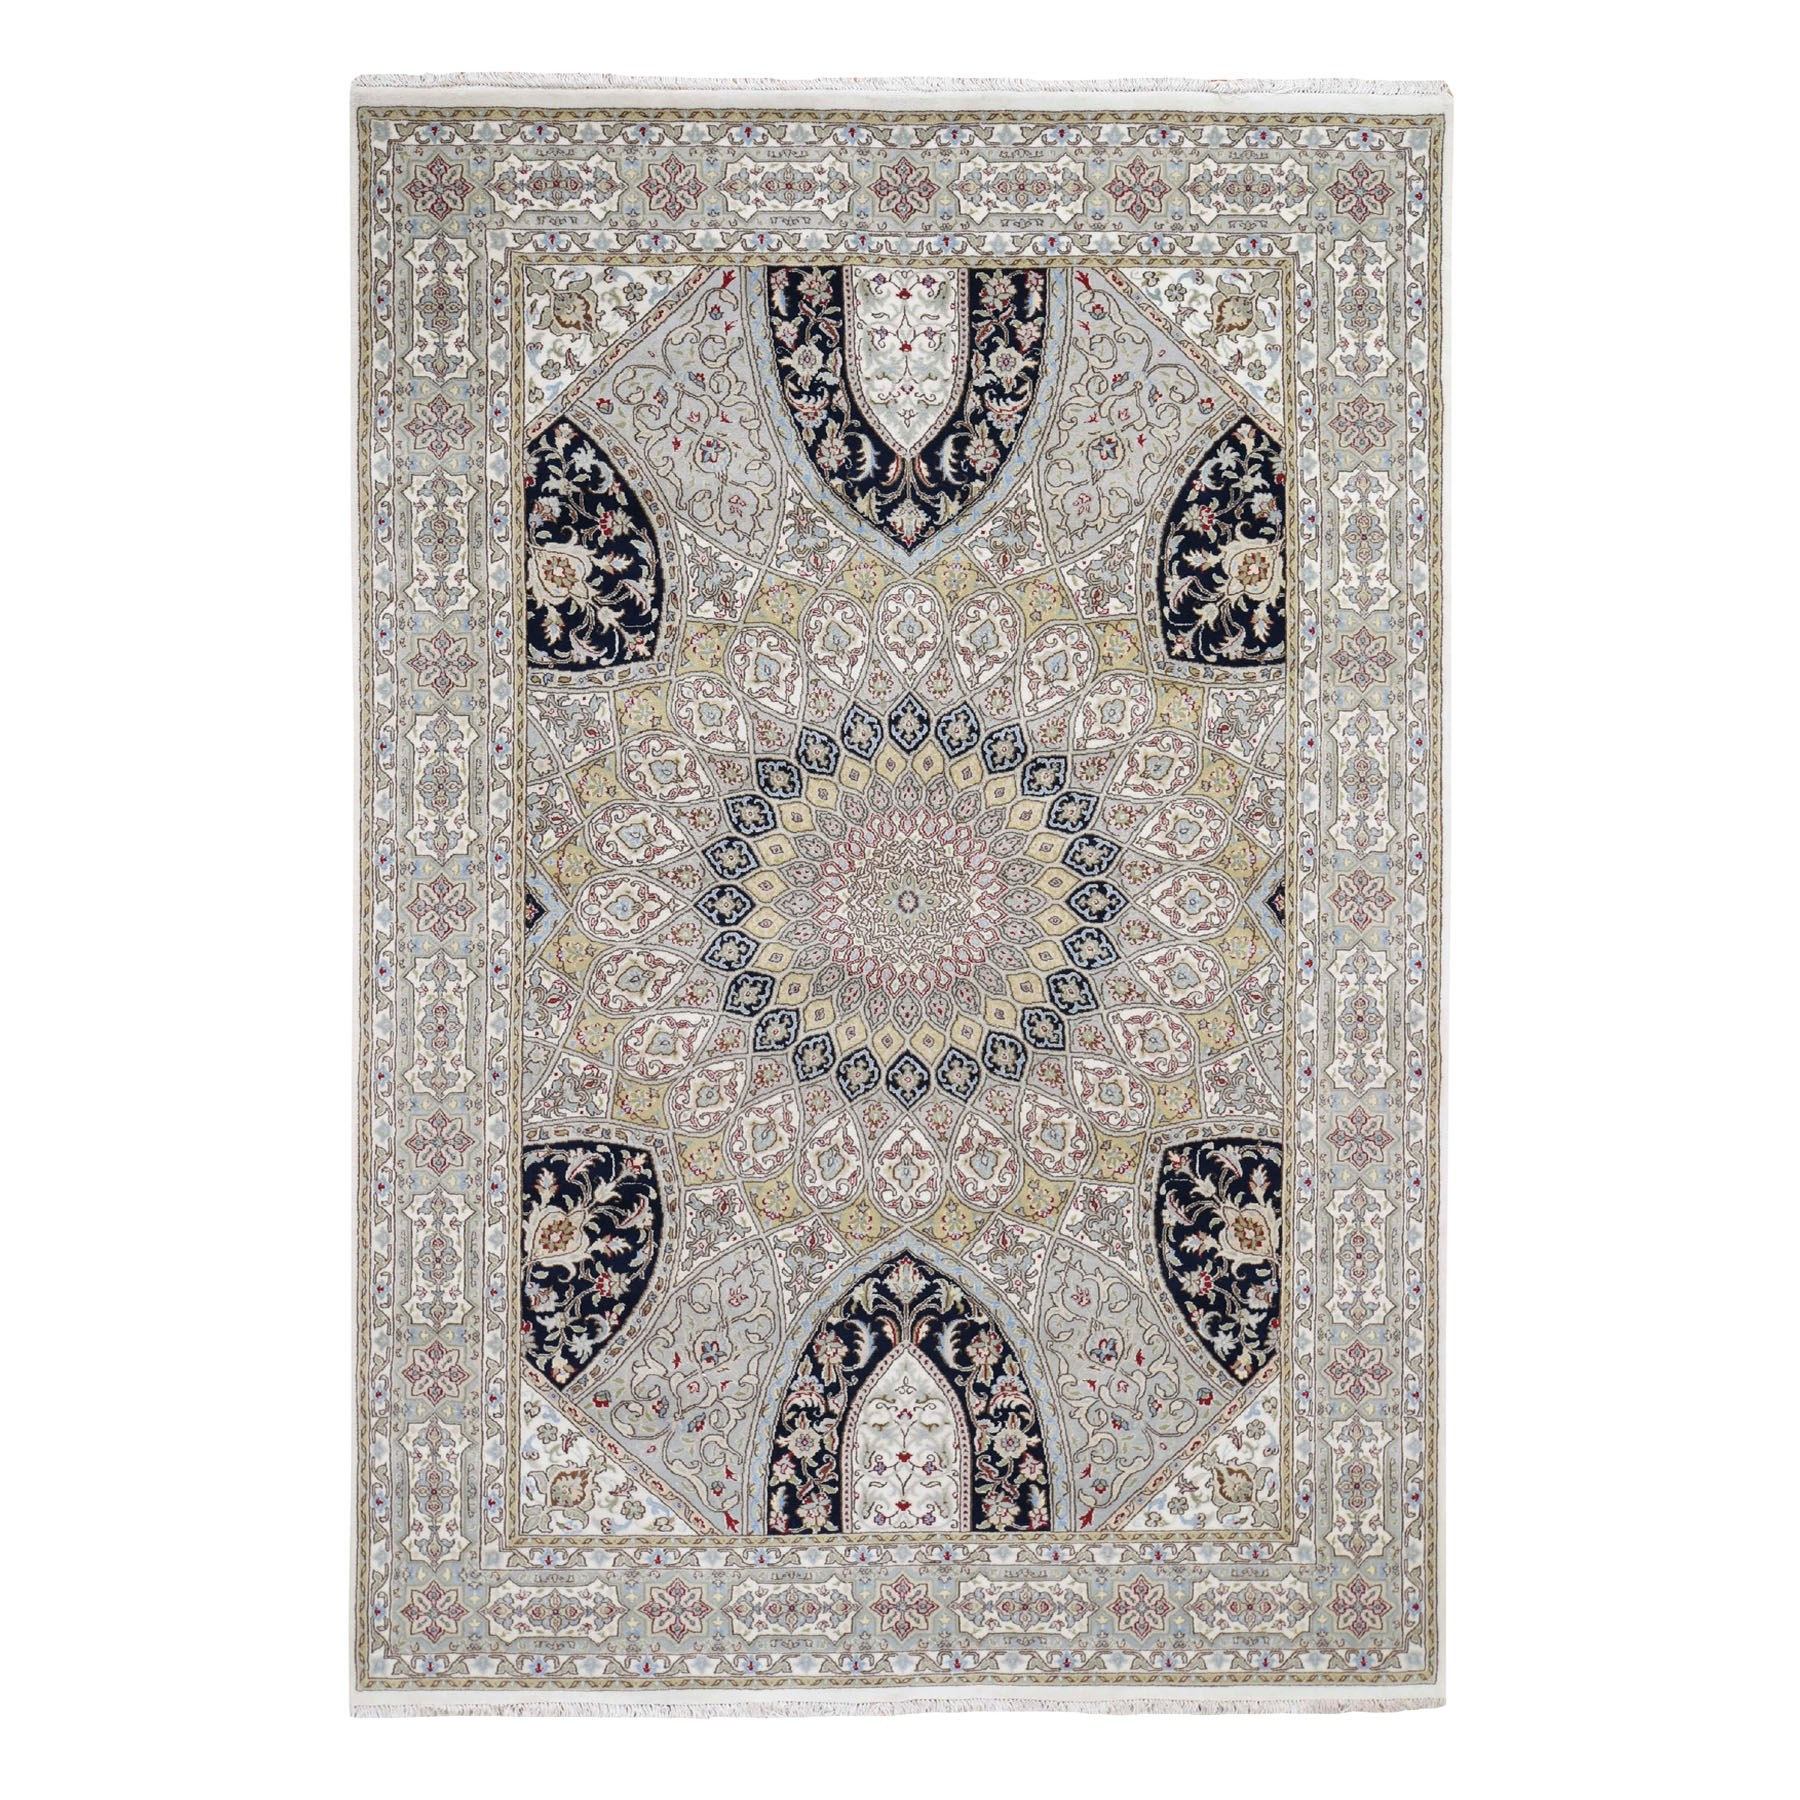 6'x9' Gray Nain With Gumbad Design Wool and Silk Hand Knotted Oriental Rug